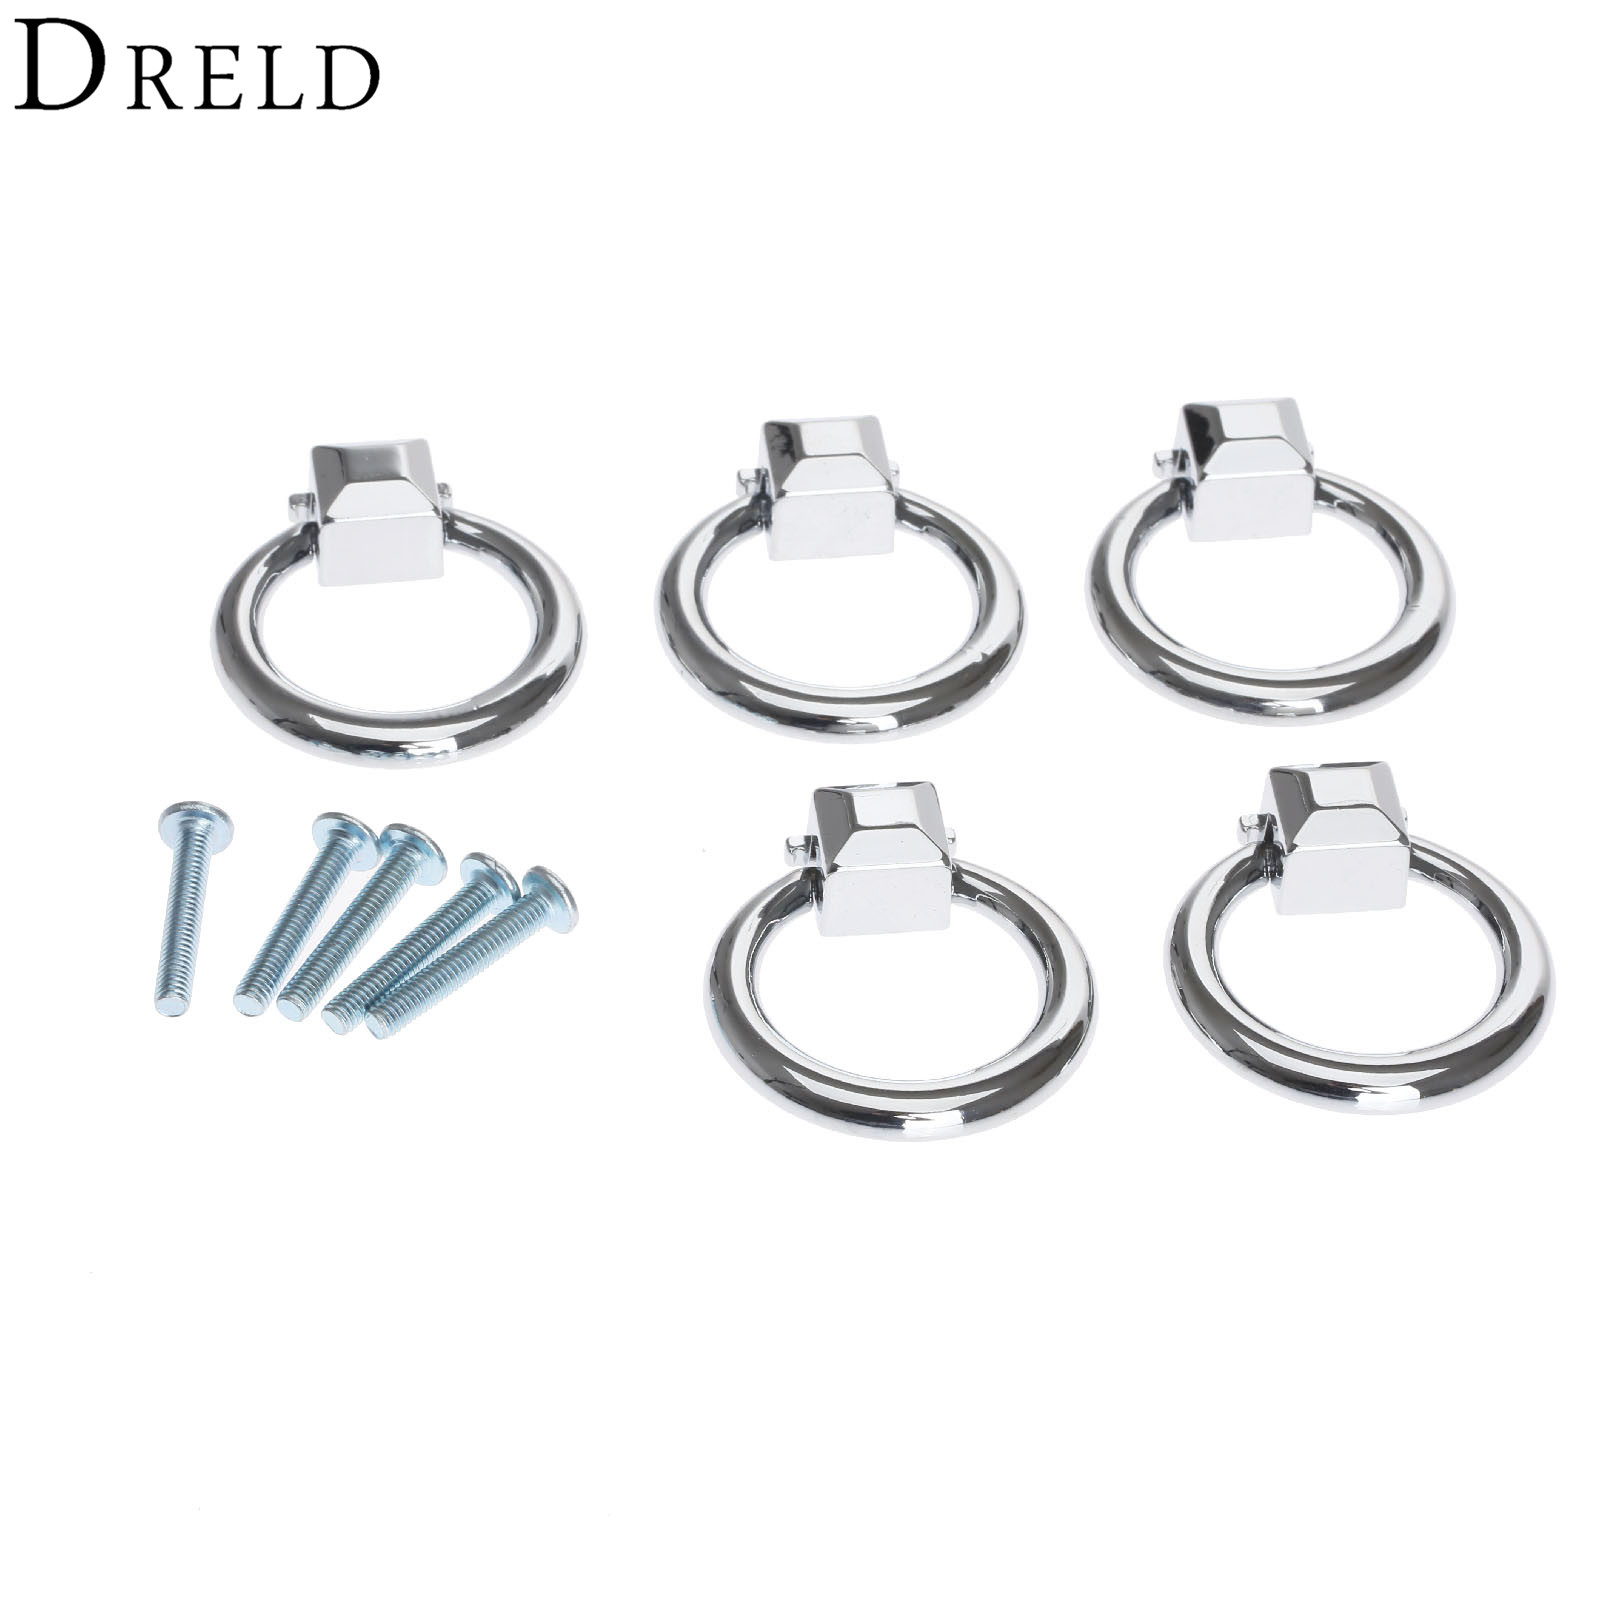 Drled 5pcs Antique Furniture Ring Knobs Pull Handle